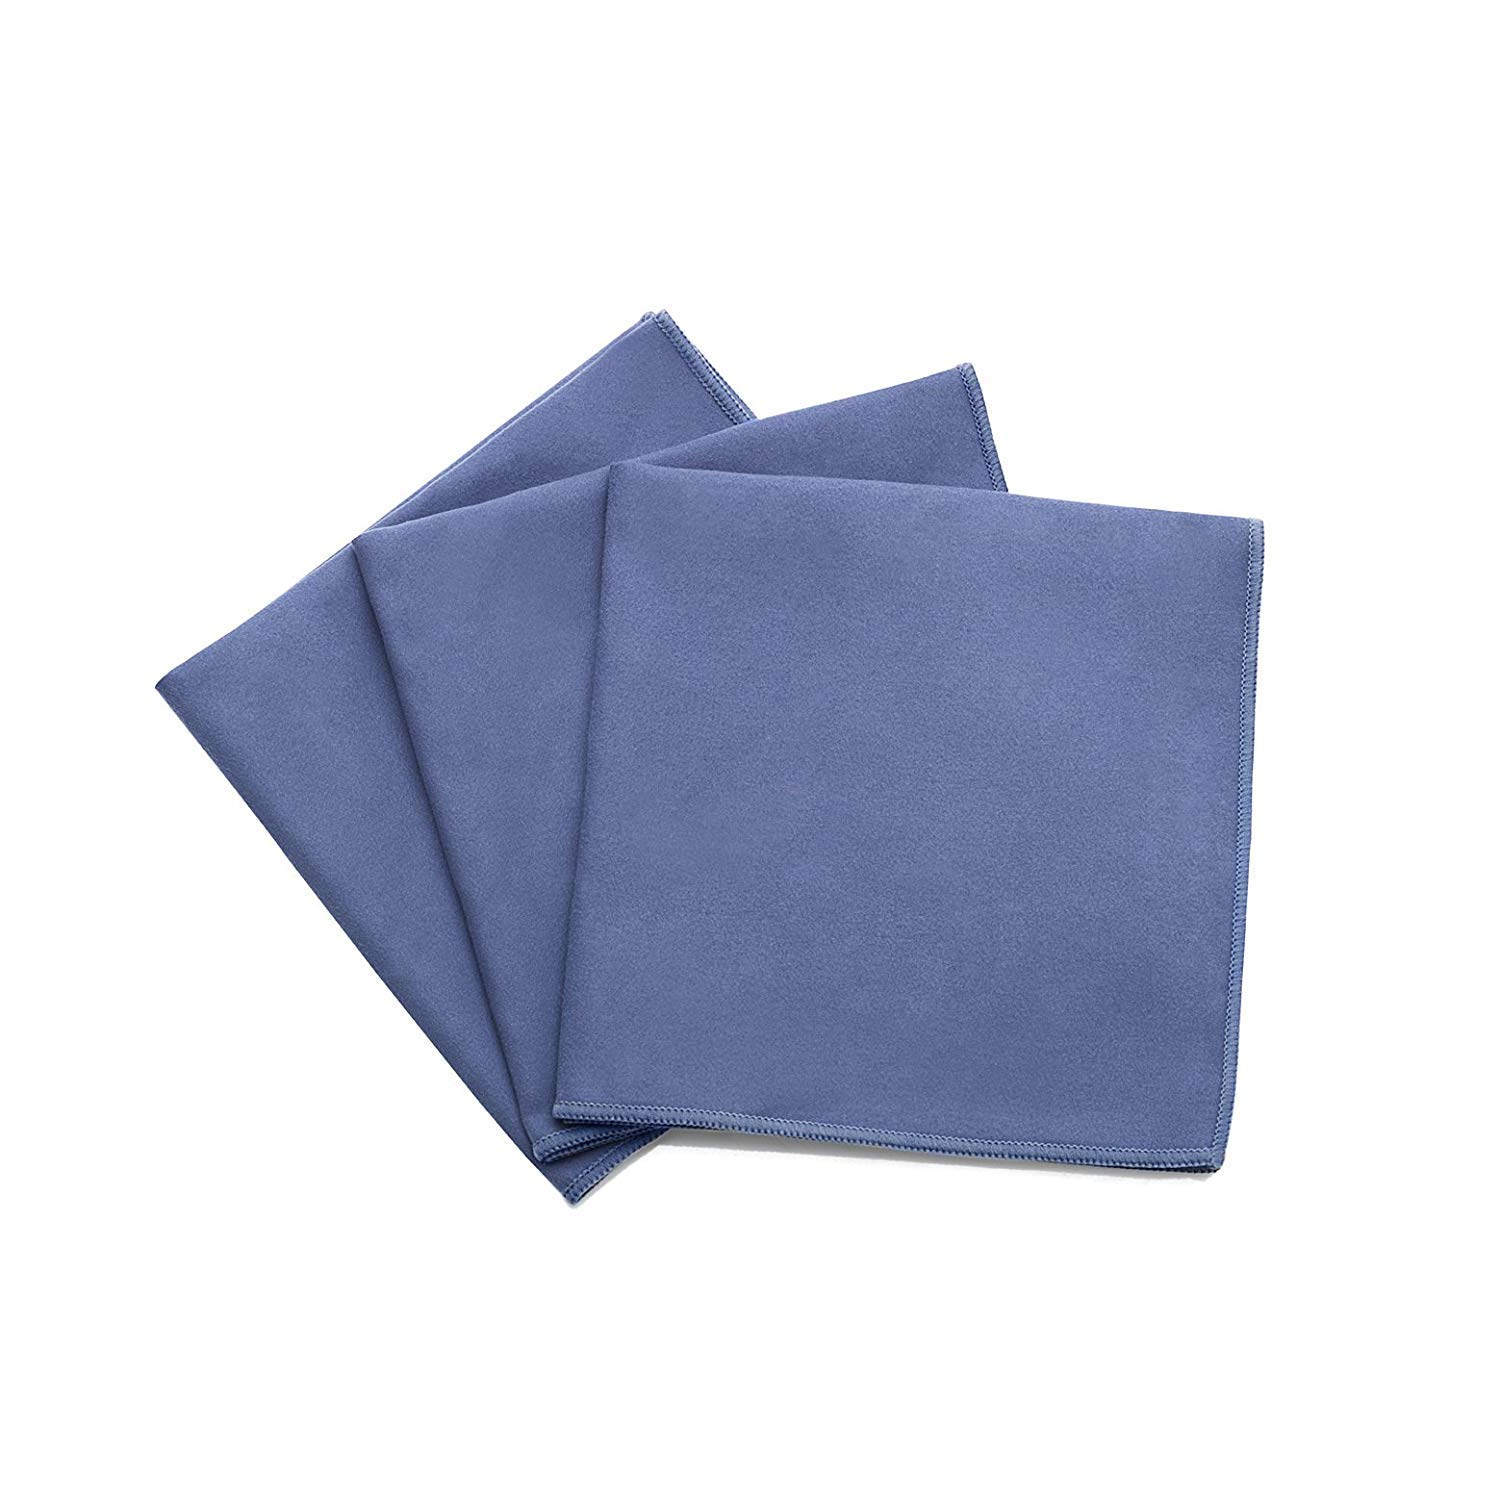 "Fuller Brush Specialty Suede Microfiber Cloths - Restores Luster to Wood & Leather - Extra Large 16""x16"" - 3 Pack"